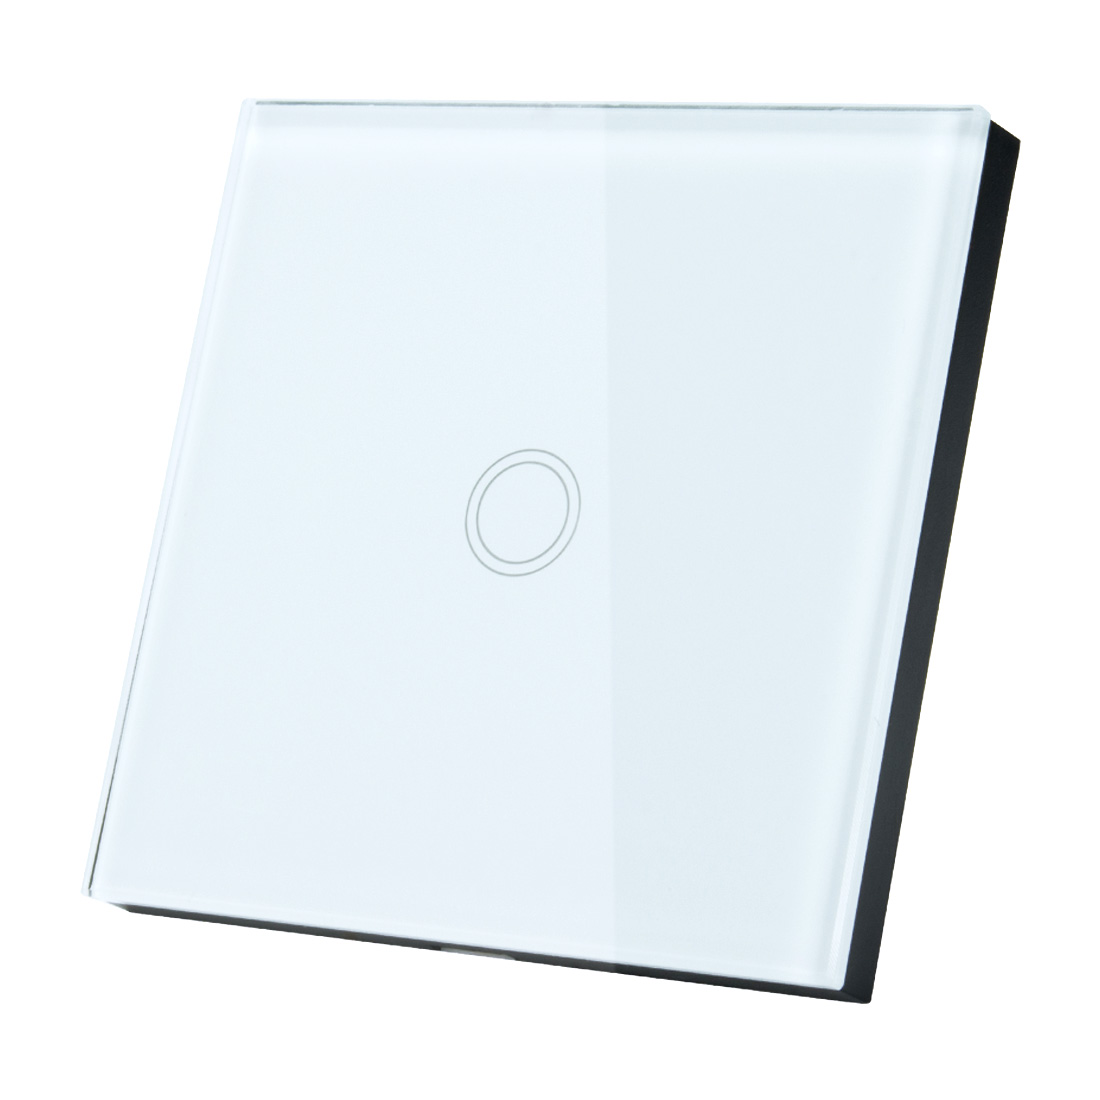 AC 110-240V 1 Way 1 Gang Panel Wall Light Touch Switch White EU w Remote Control